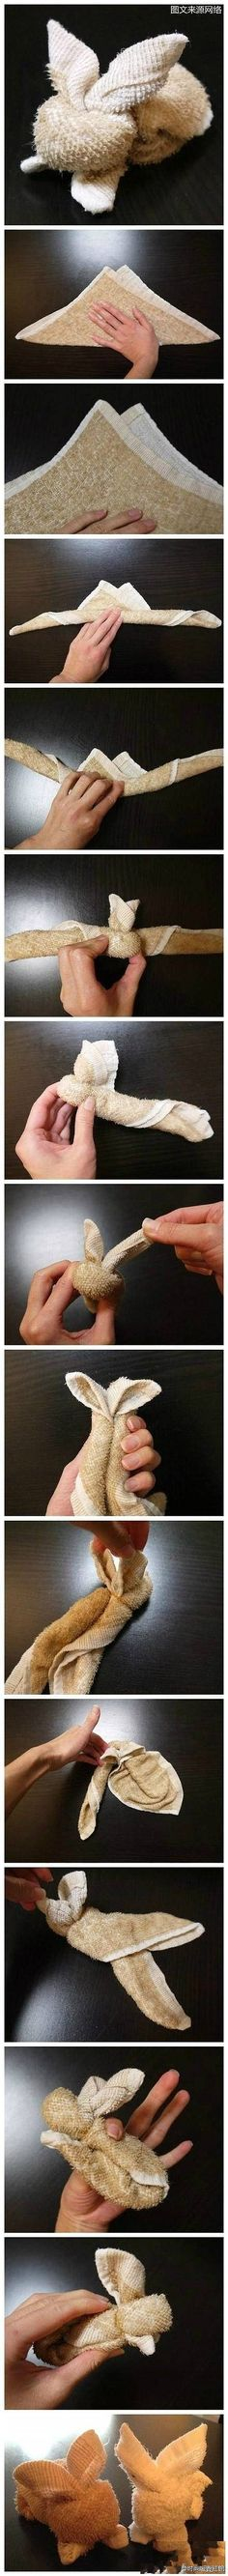 Rabbit towel folding